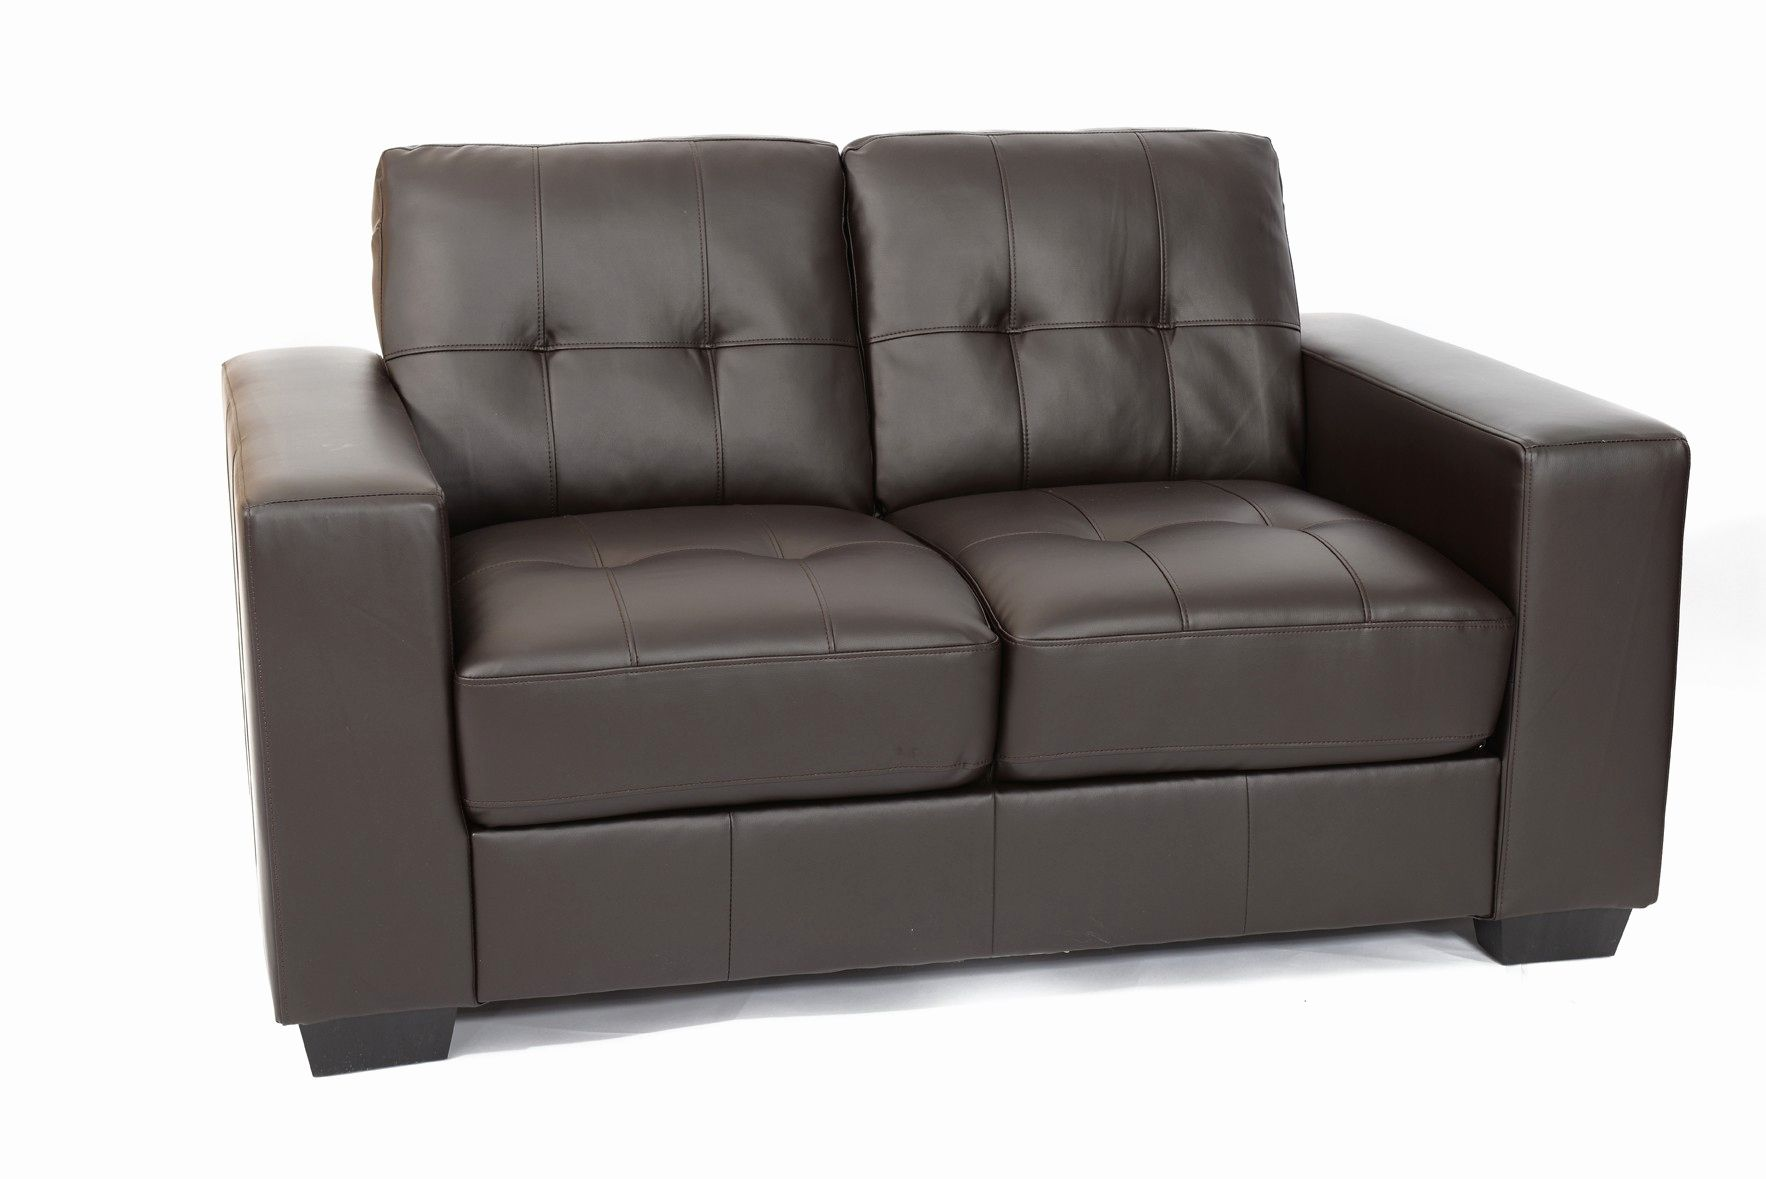 Natuzzi Sofa Reviews Cheap Beds Toronto Editions Florence Leather Www